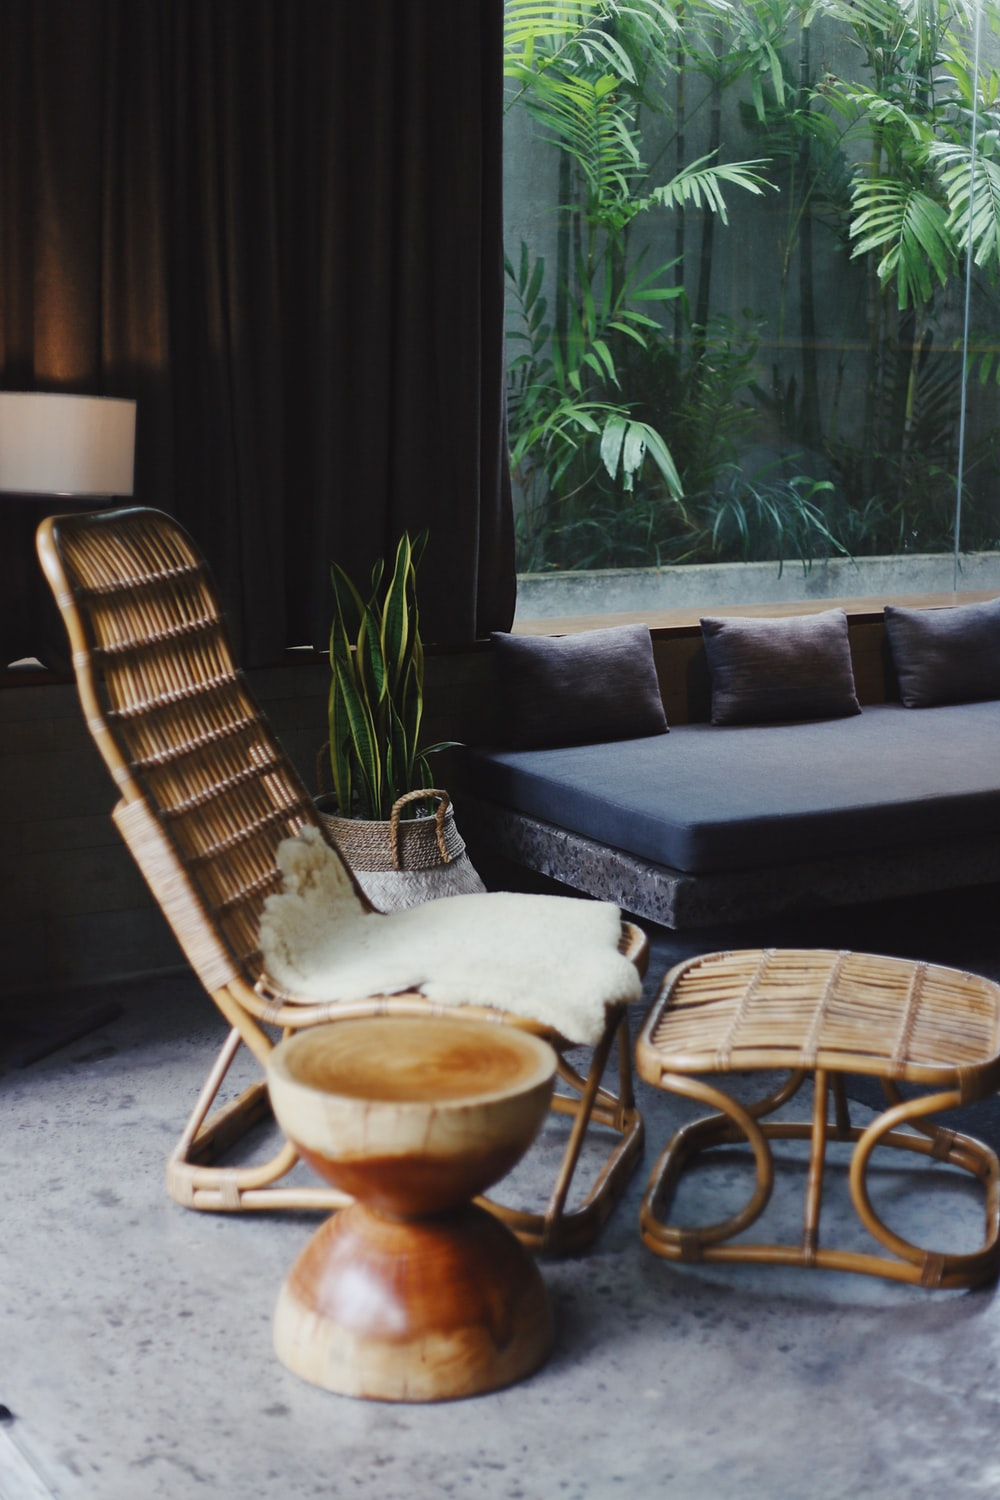 brown wooden chair beside a brown leather sofa during daytime